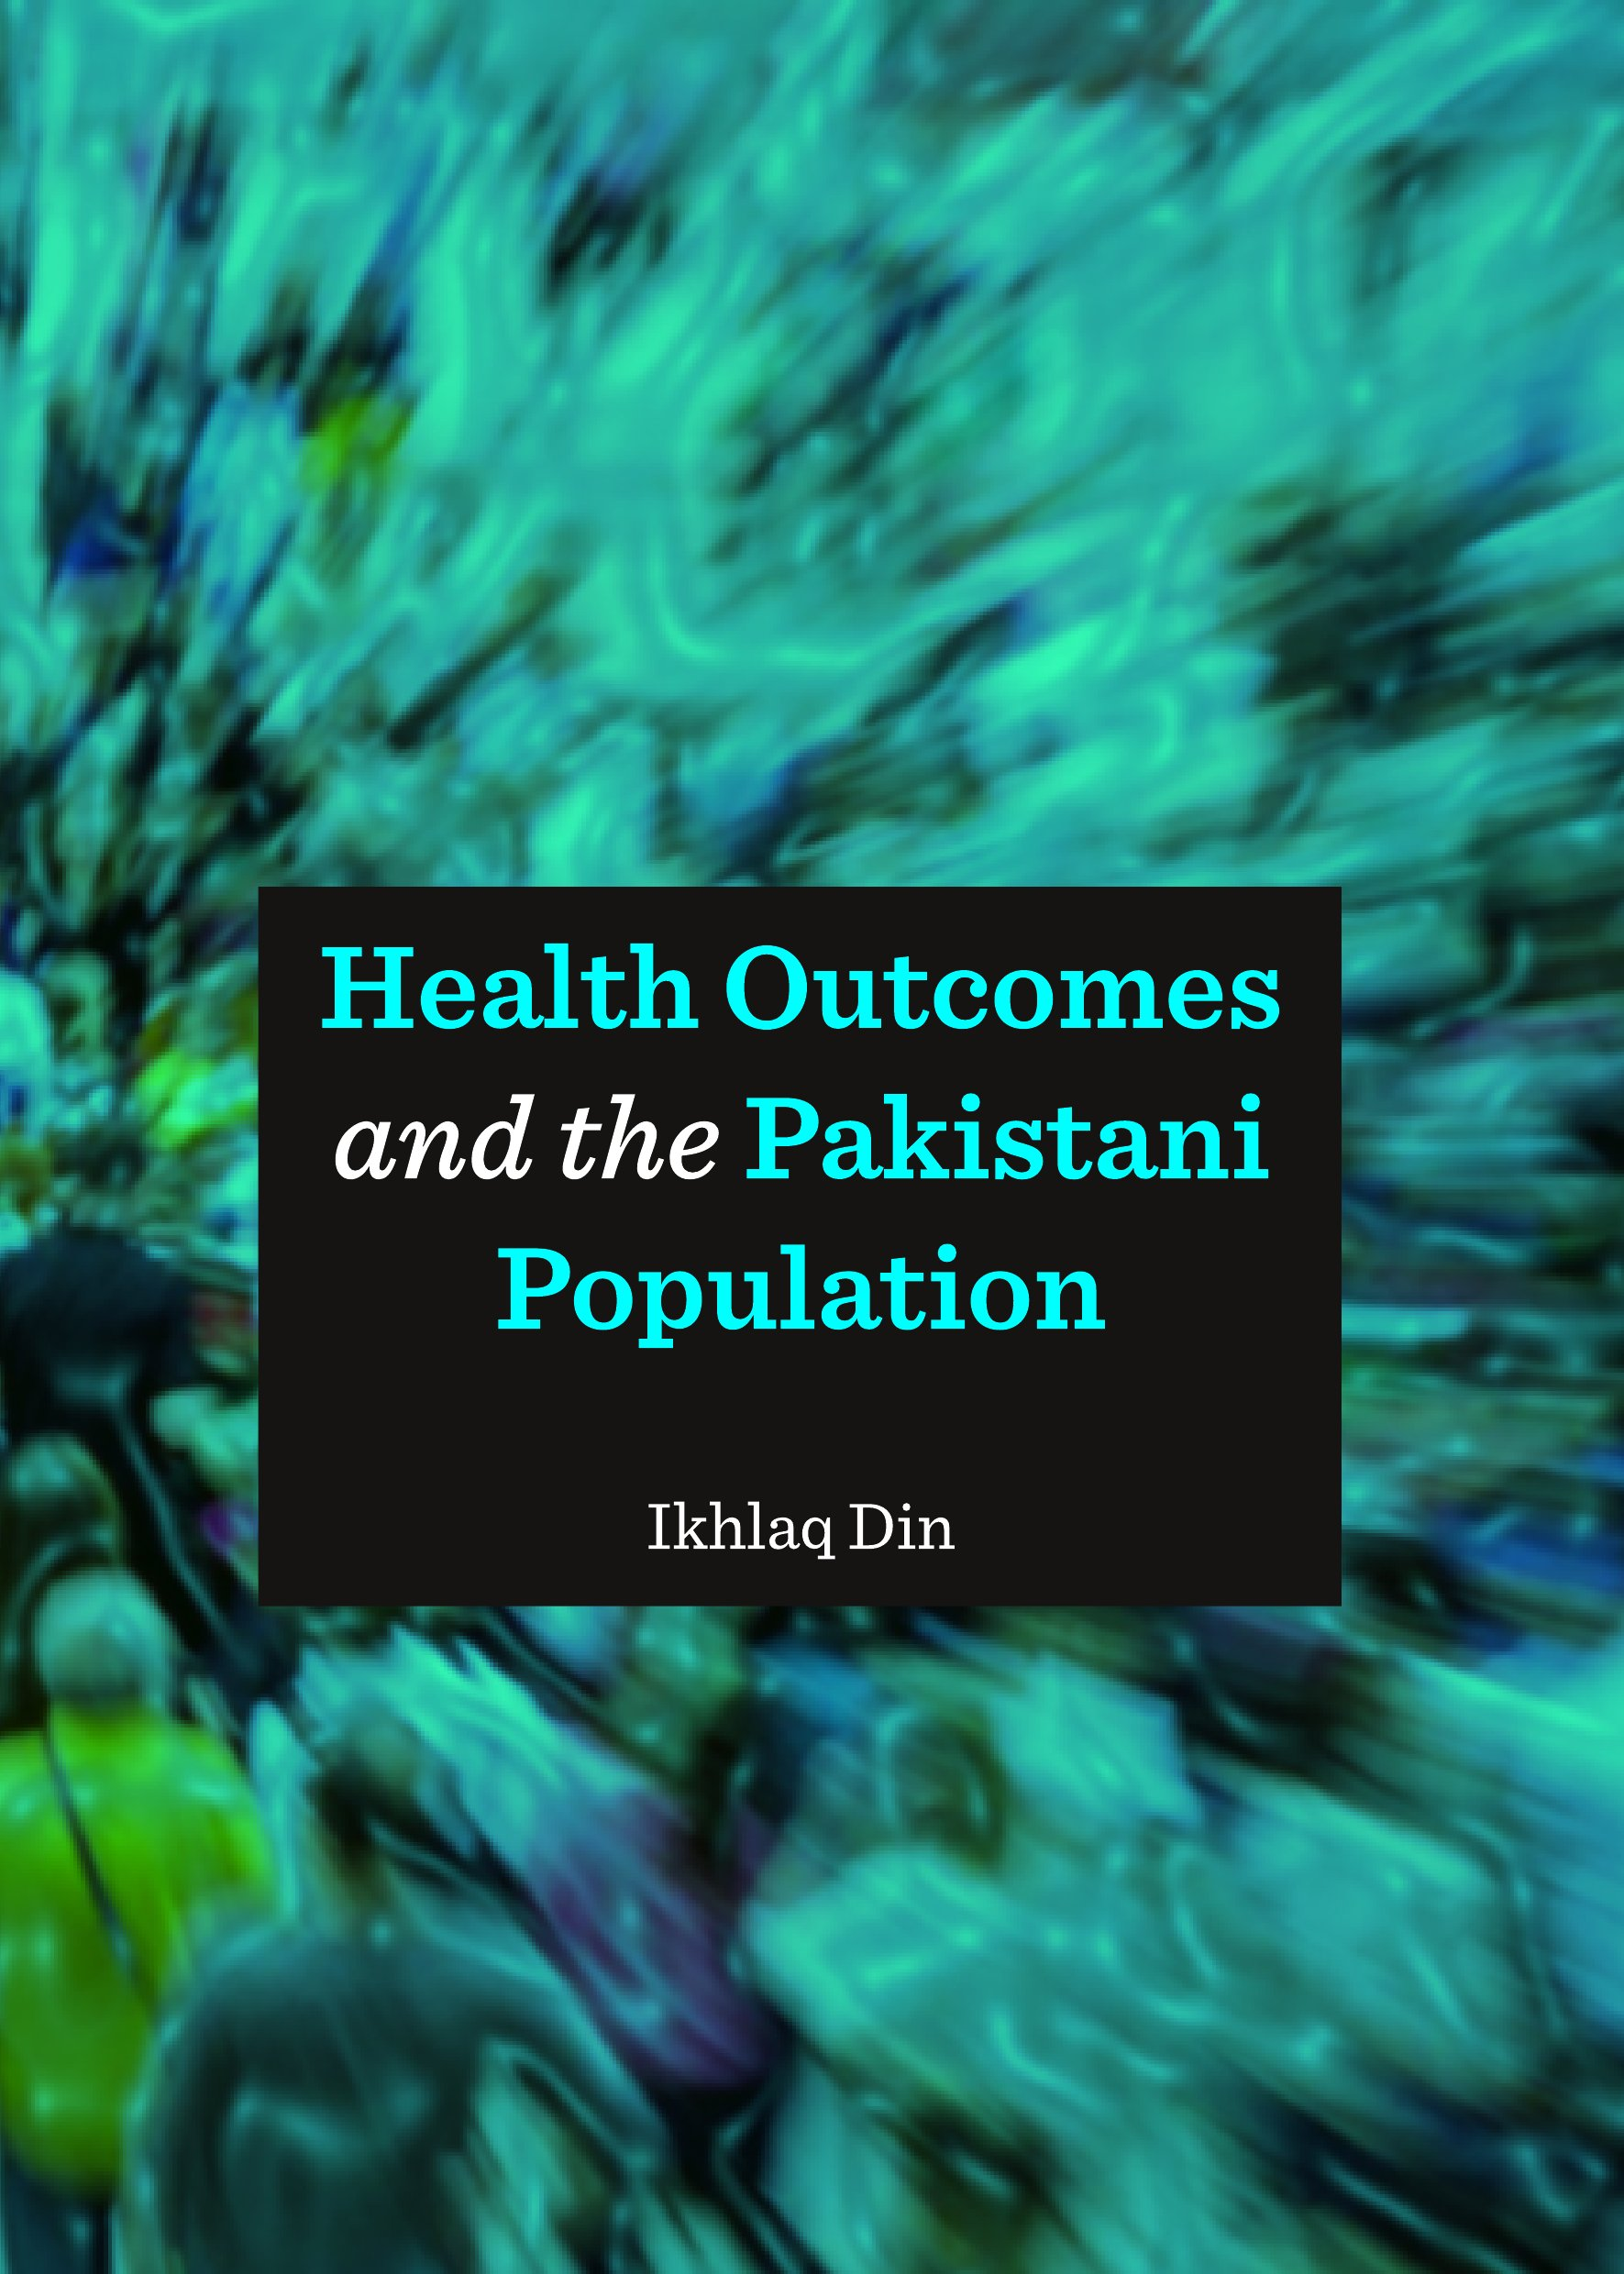 Health Outcomes and the Pakistani Population